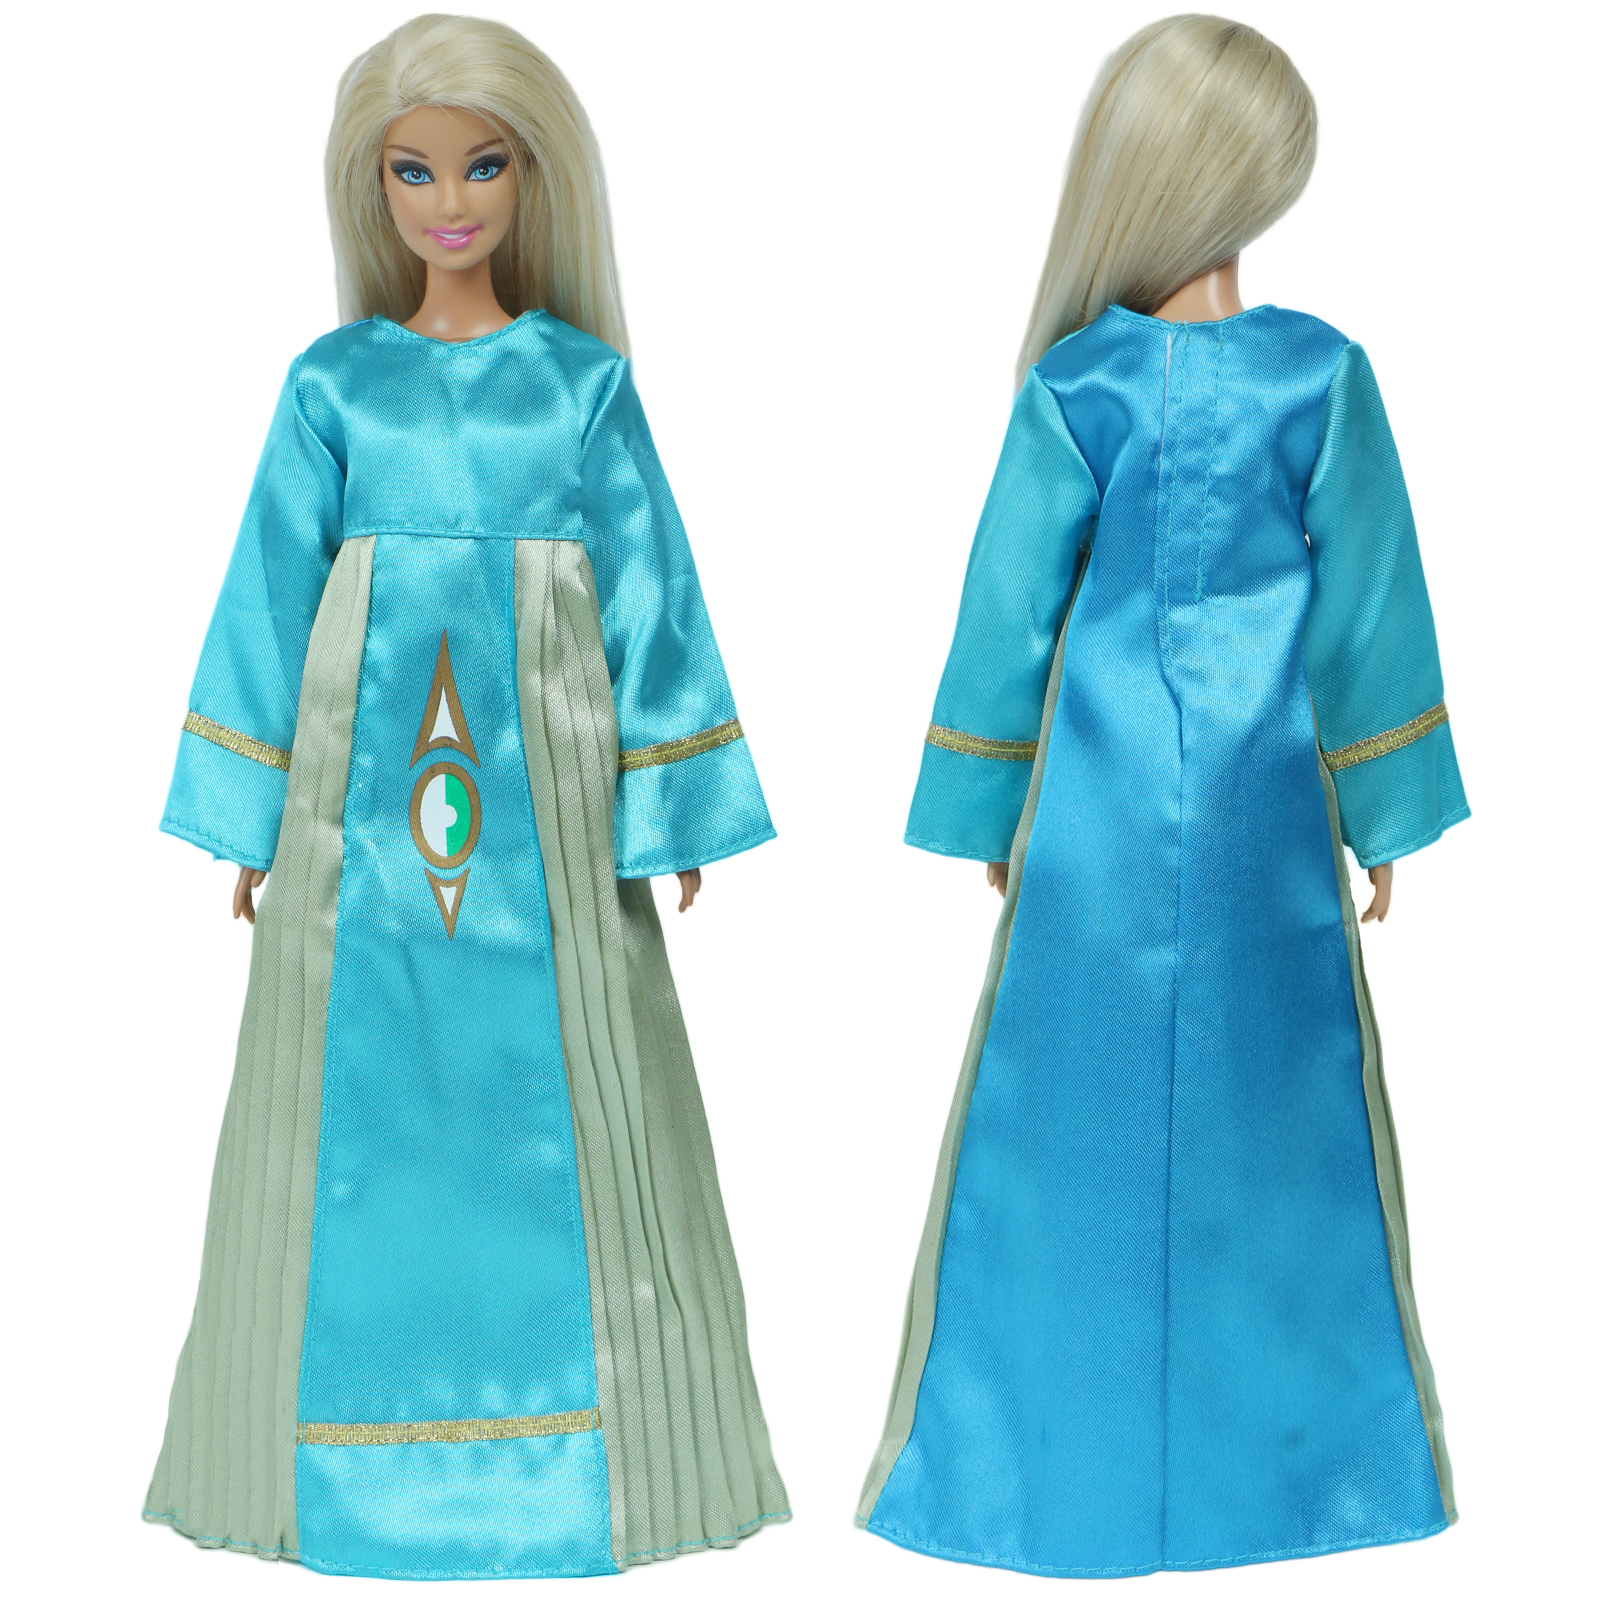 1x Handmade Blue Dress Evening Party Outfit Long Sleeves Gown Robe Clothes For Barbie Doll Accessories Kids Girl Toys